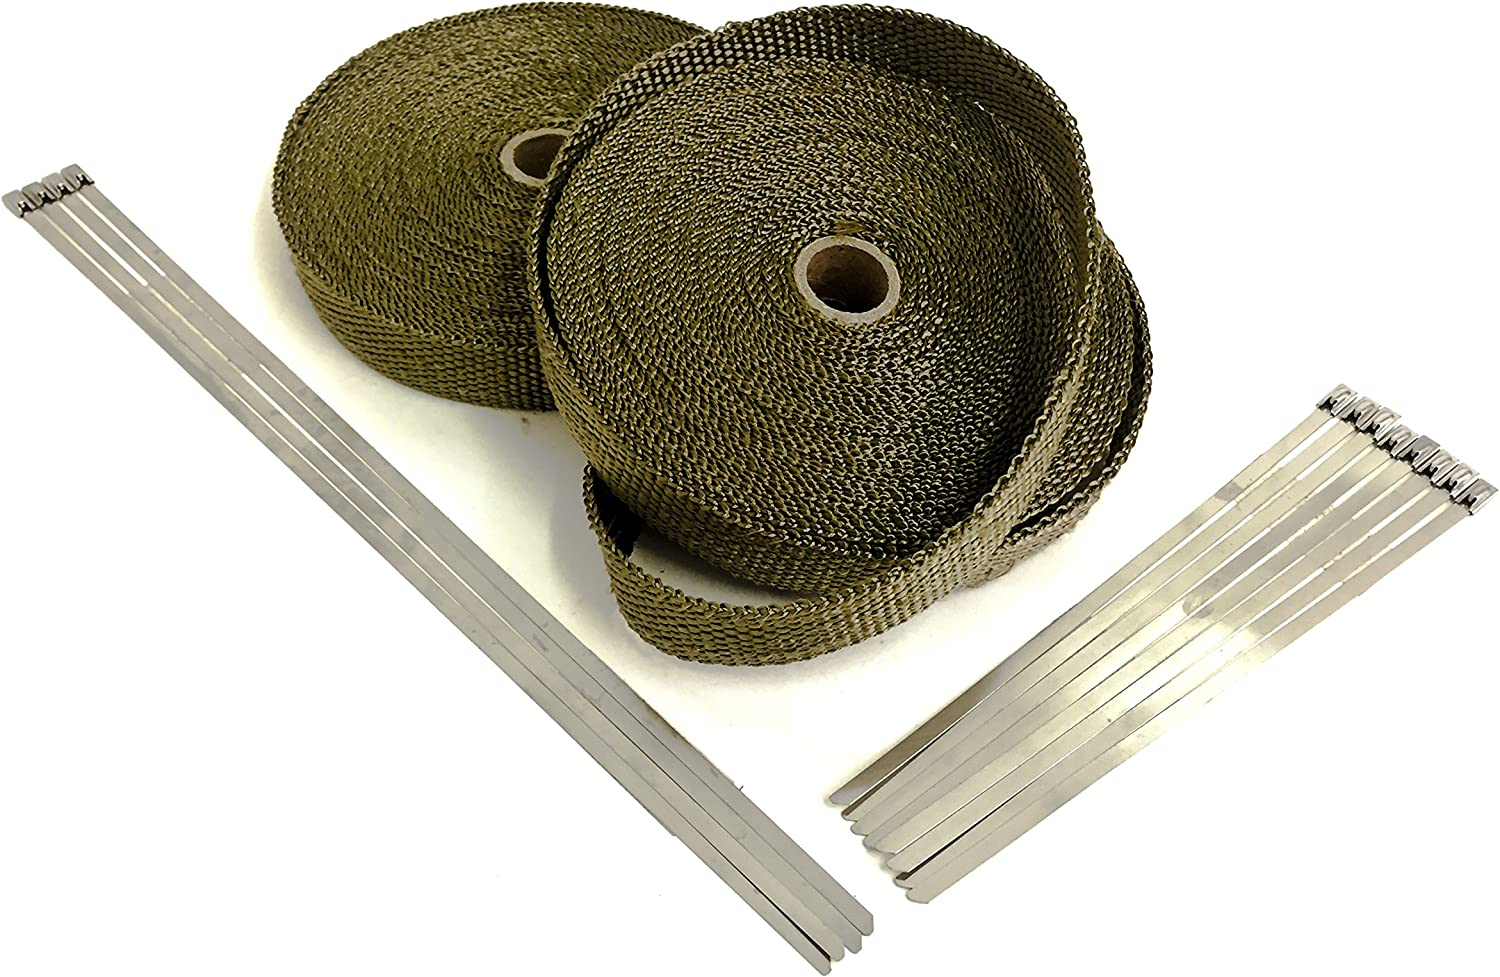 "Exhaust Heat Header Wrap /& Stainless Locking Ties 1//16/"" X 2/"" X 50/' Tan High Temp"